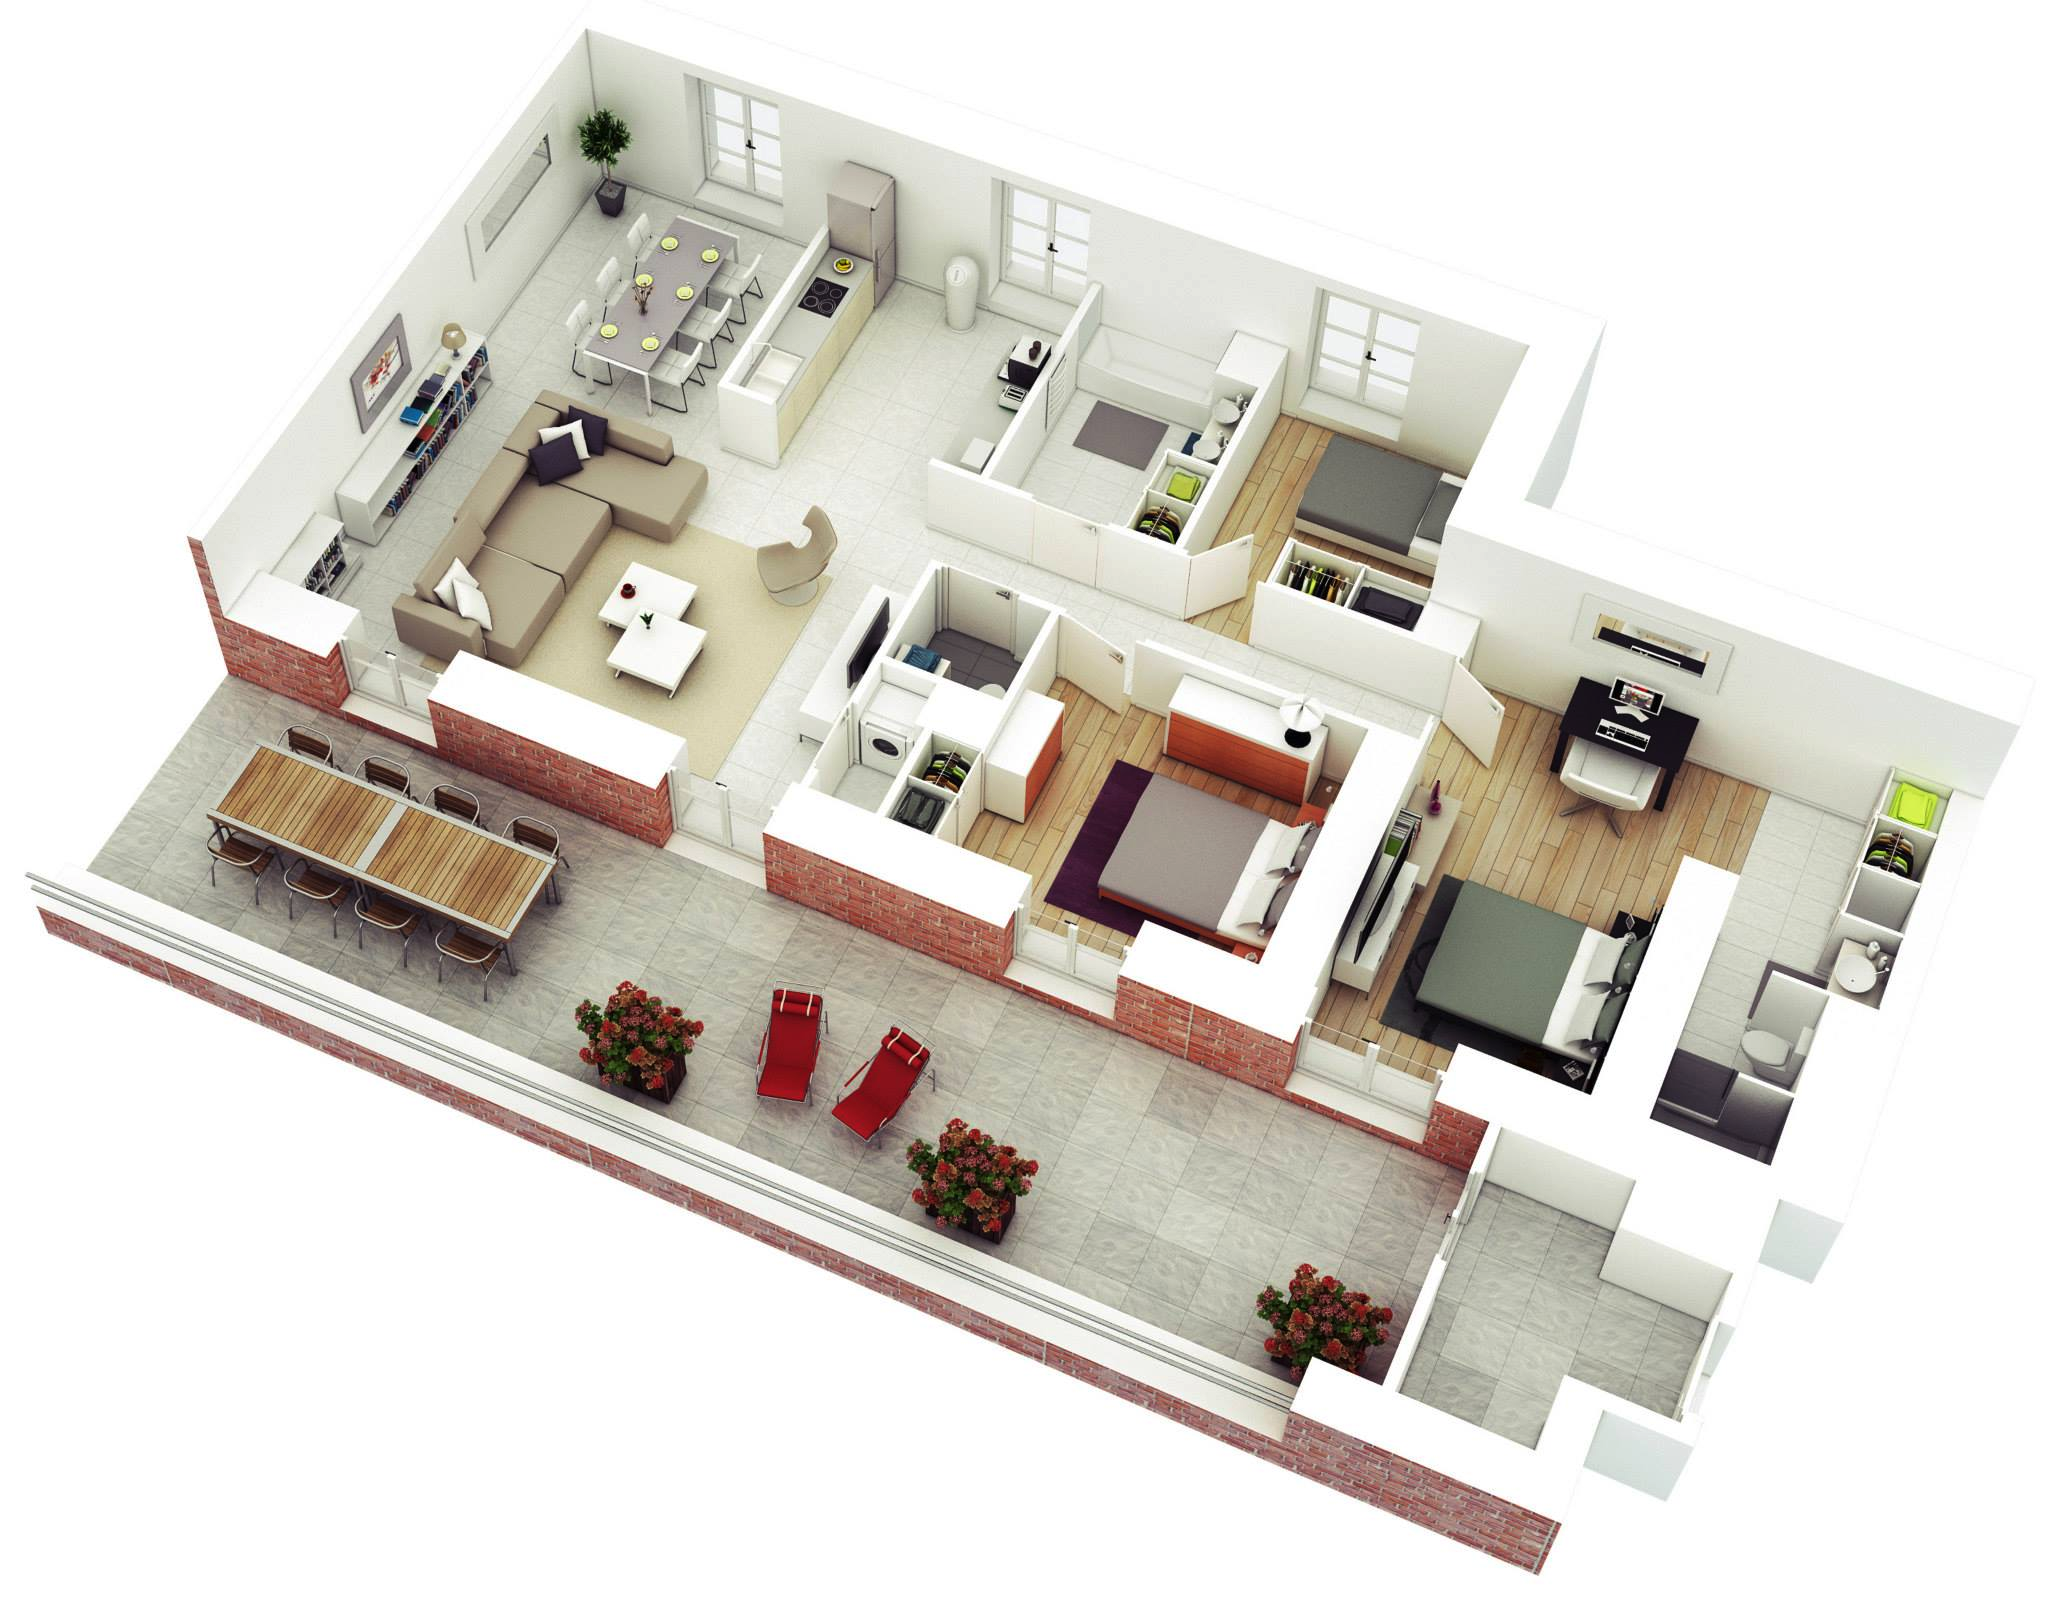 25 more 3 bedroom 3d floor plans architecture design for Plan 3d online home design free